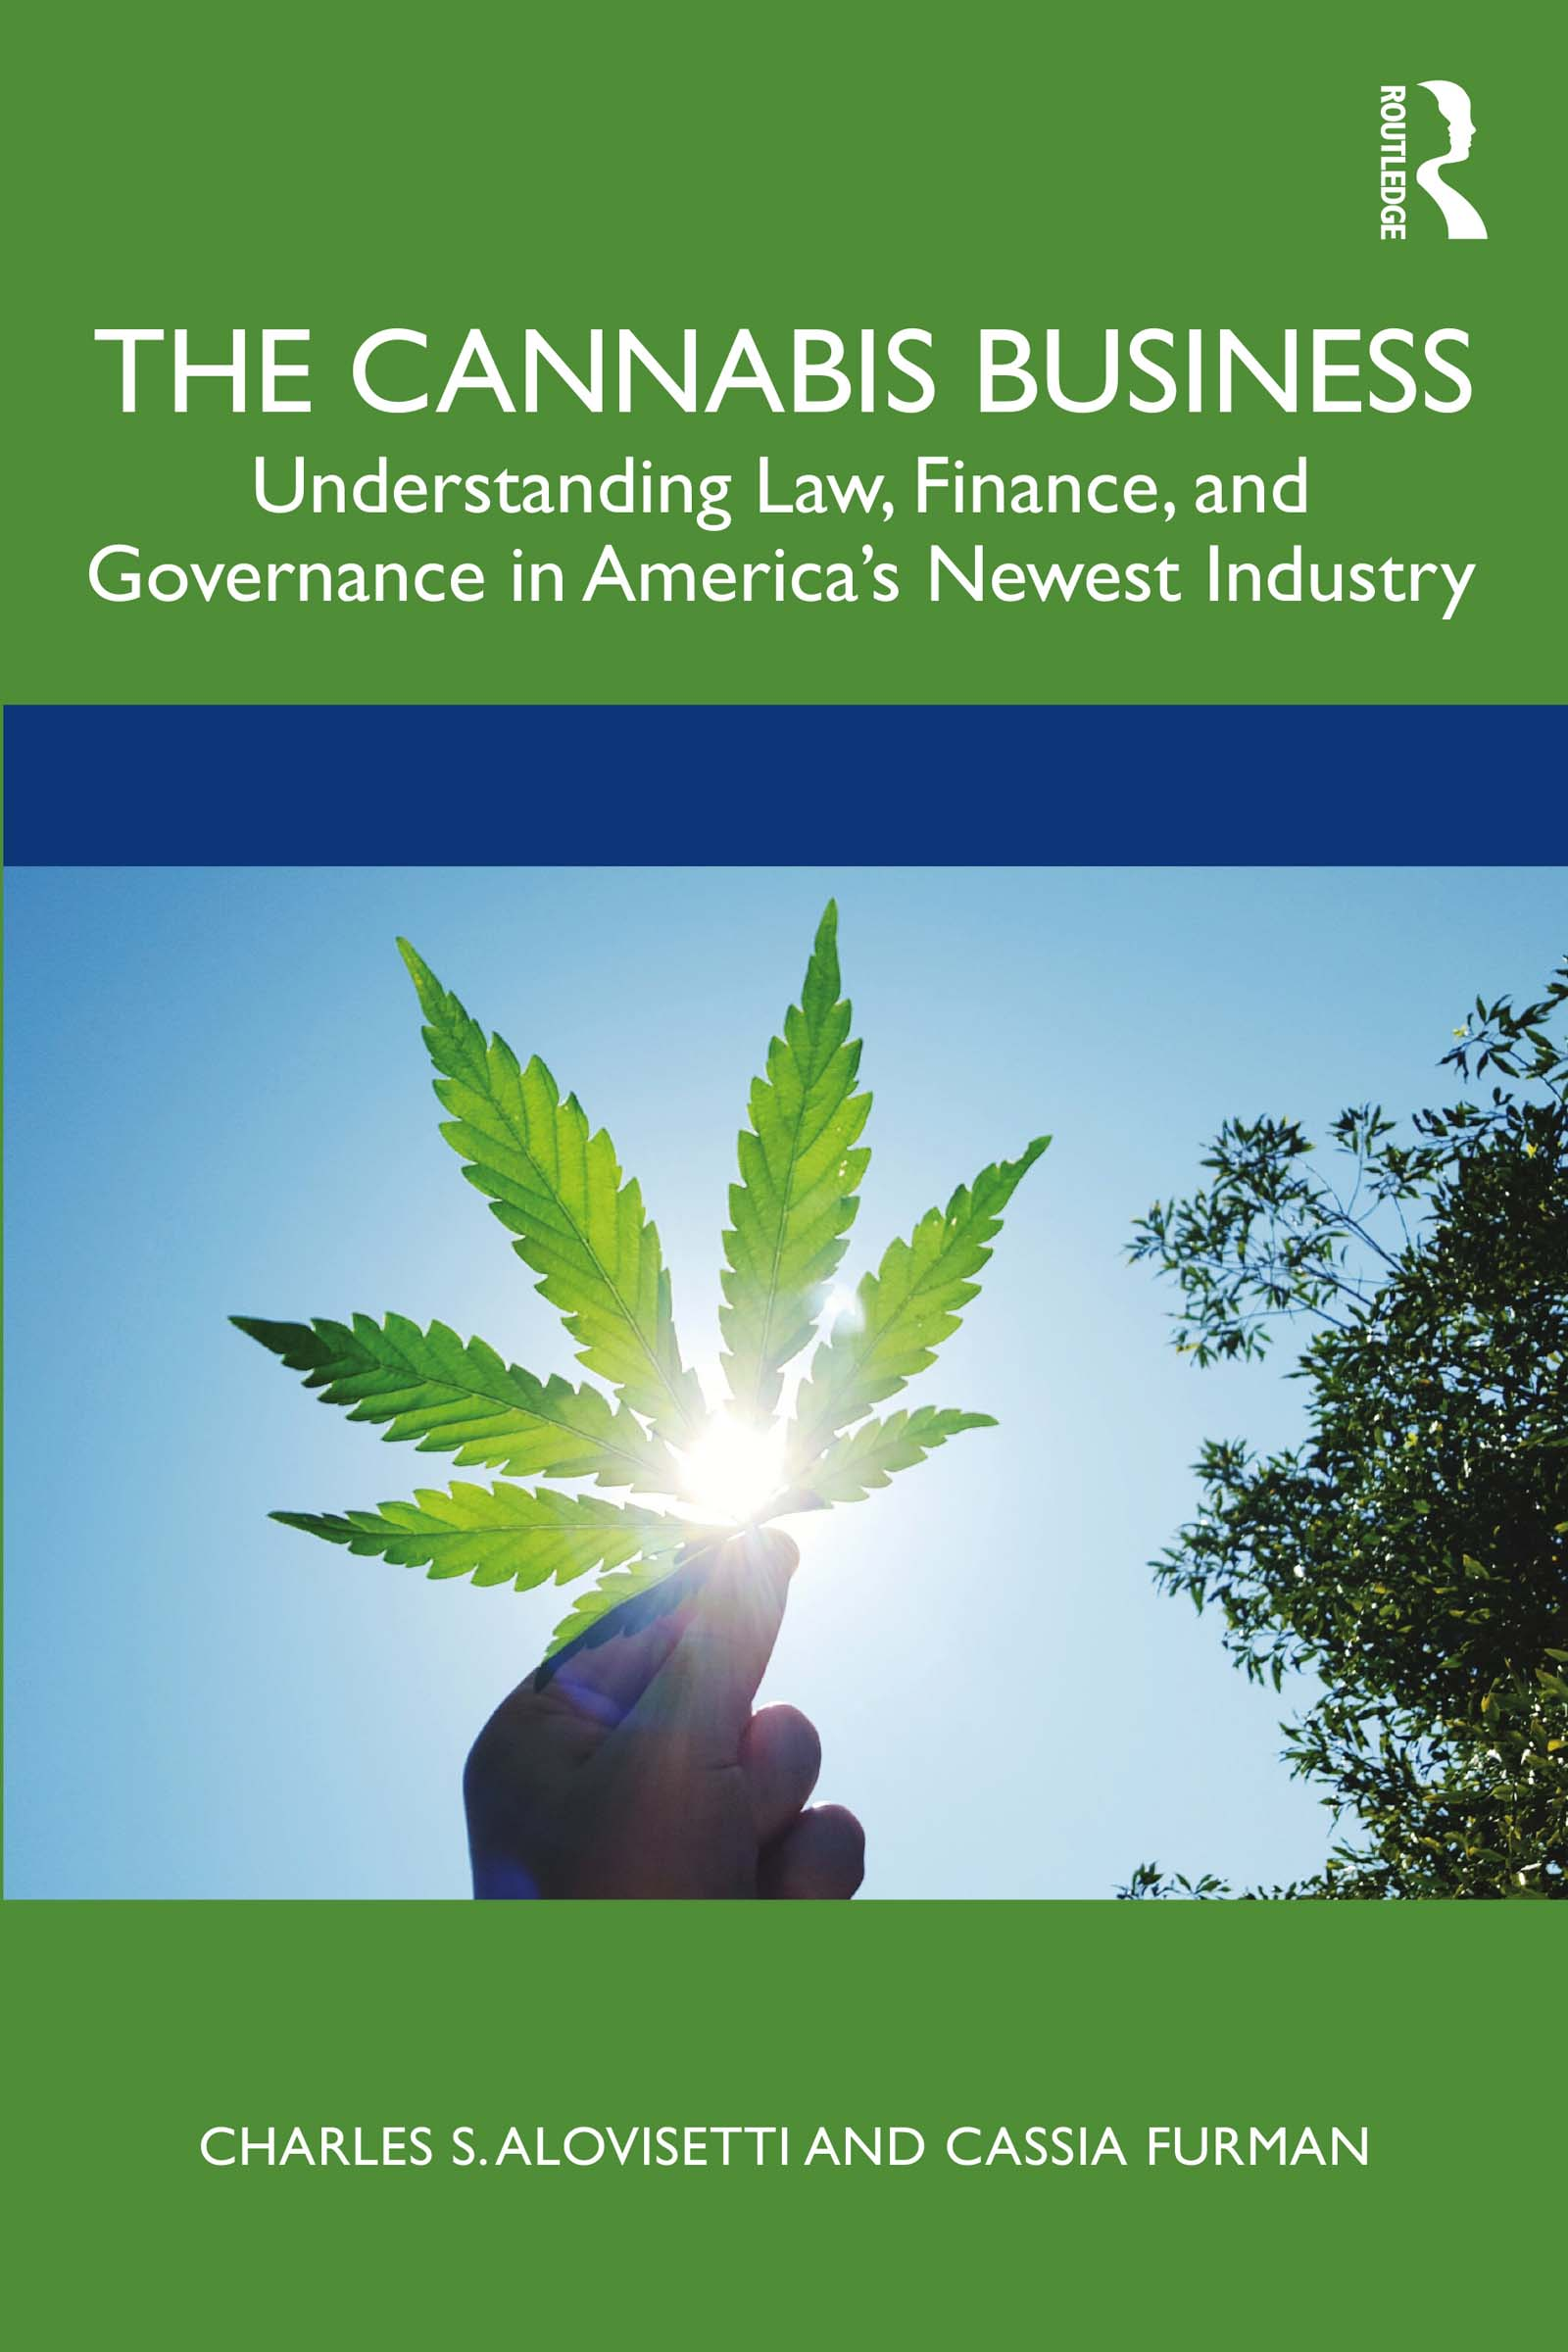 The Cannabis Business